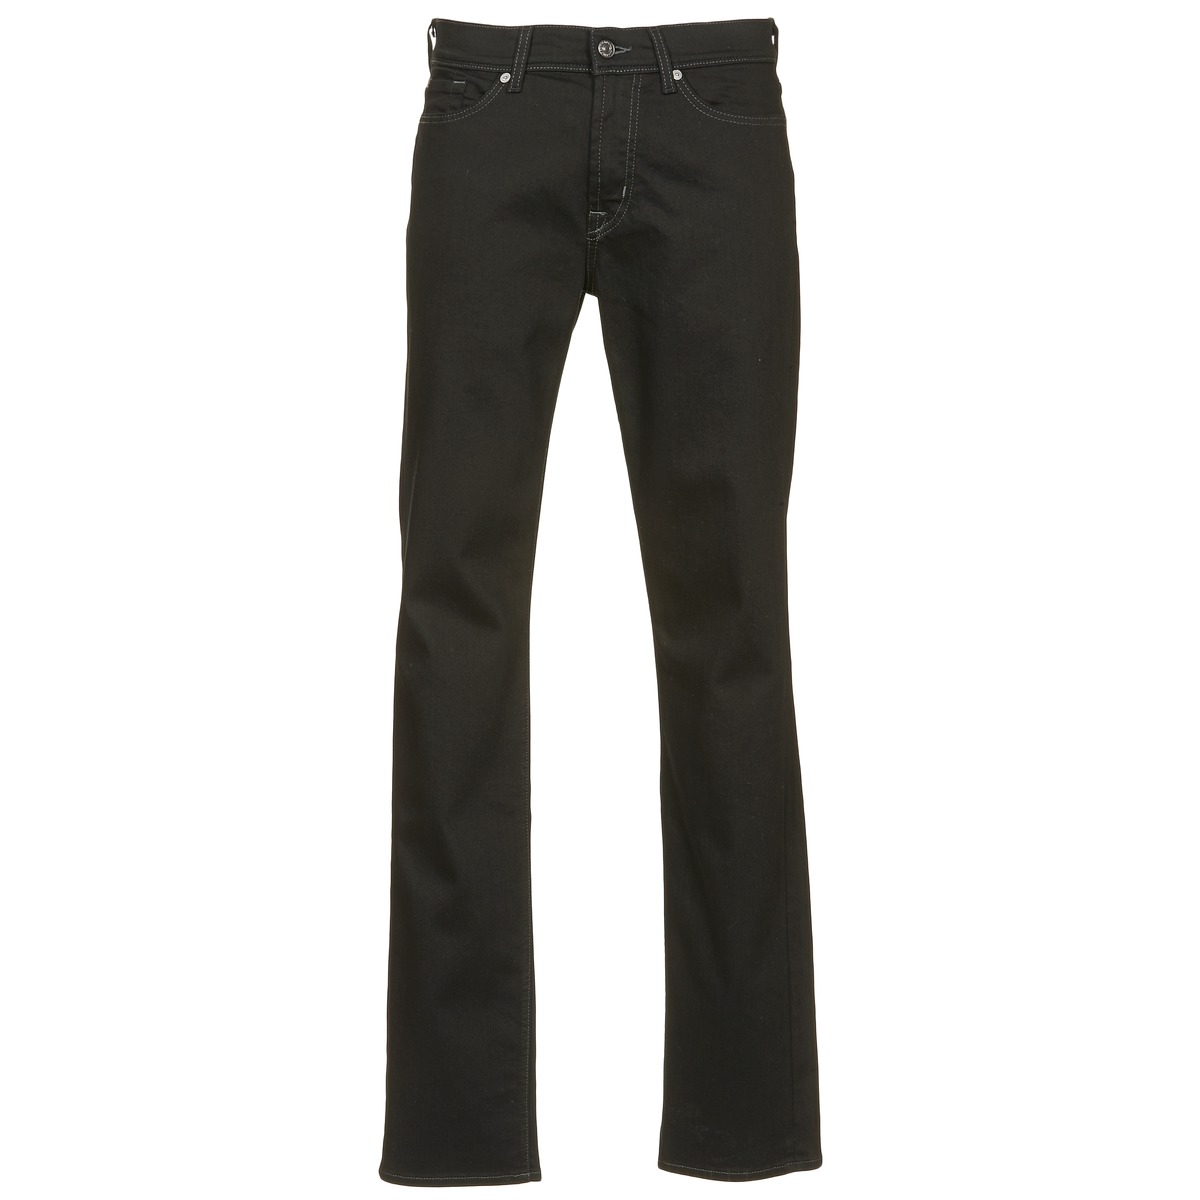 7 for all Mankind SLIMMY LUXE PERFORMANCE Schwarz